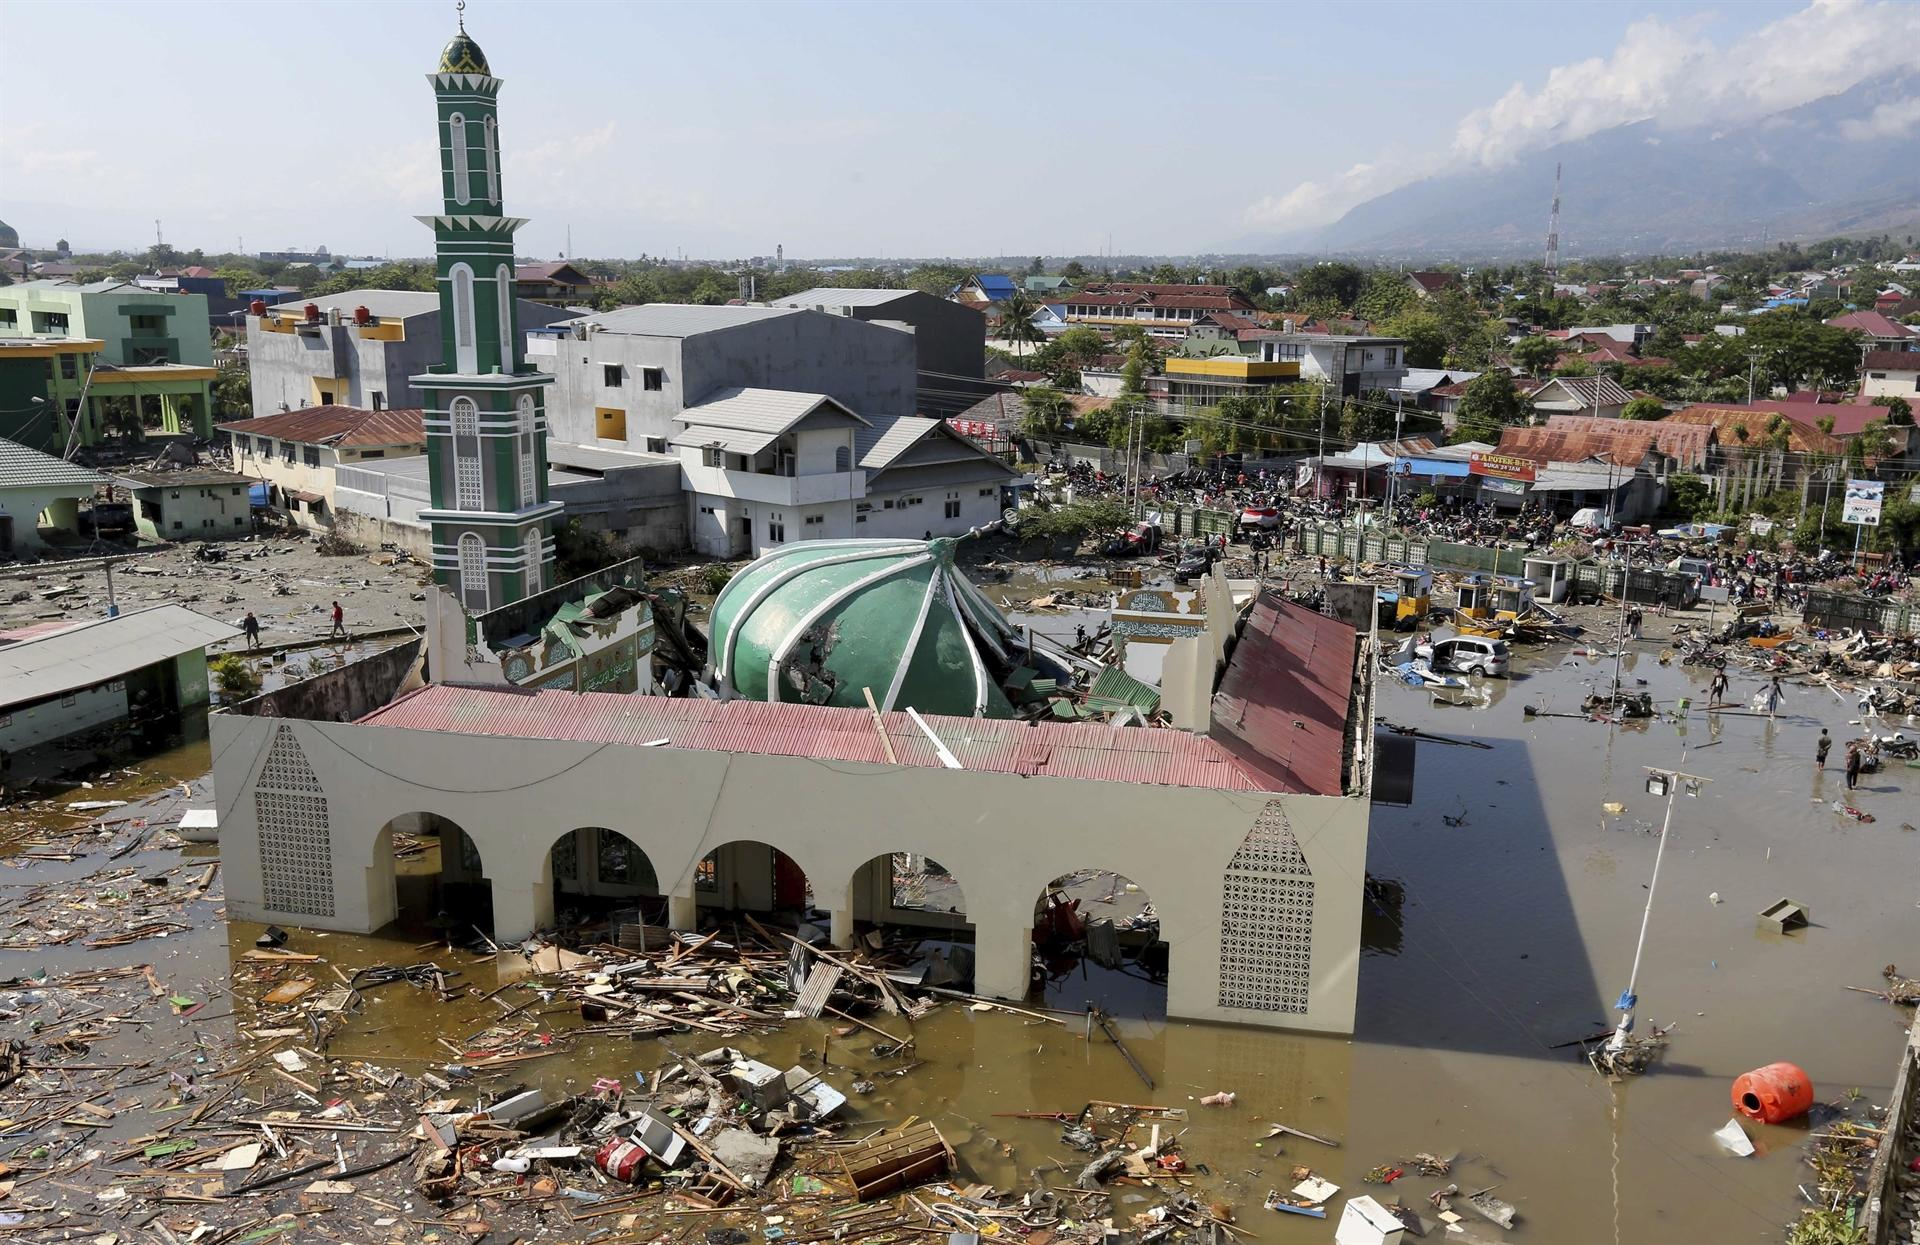 mjc sends our condolences to indonesians affected by the tsunami - Indonesian Earthquake - MJC sends our condolences to Indonesians affected by the Tsunami